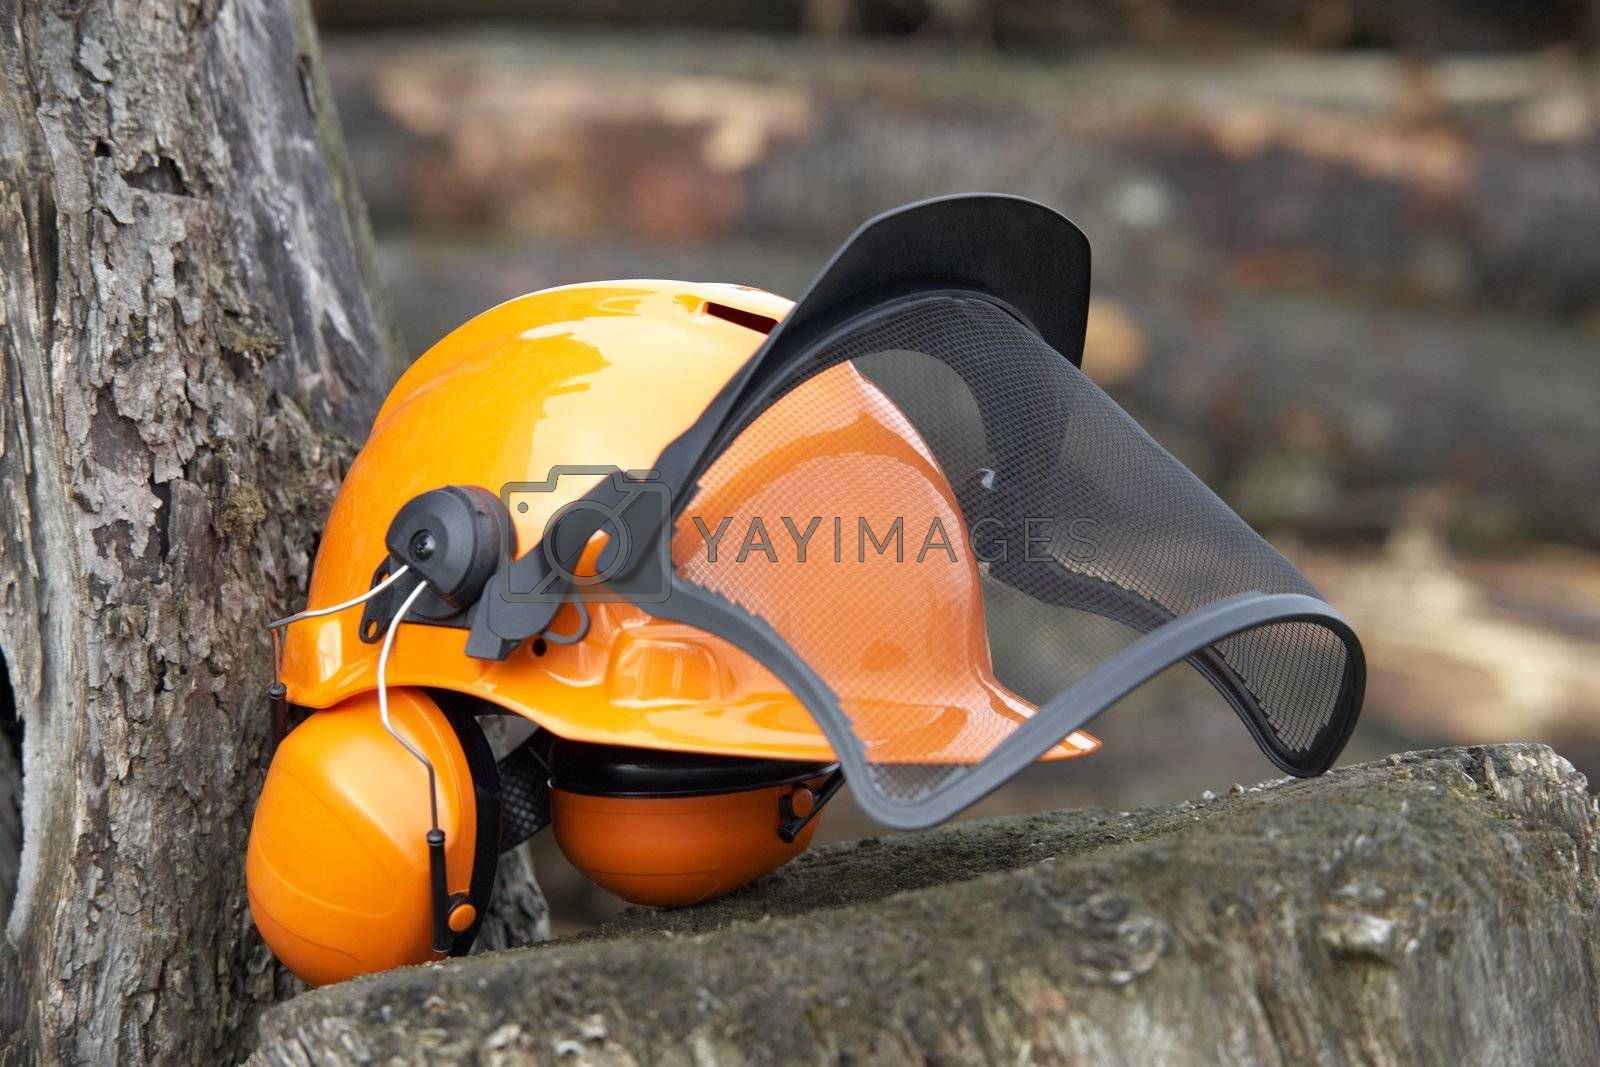 orange protective helmet with ear- and face- protection.  Outdoor shot in woody ambiance